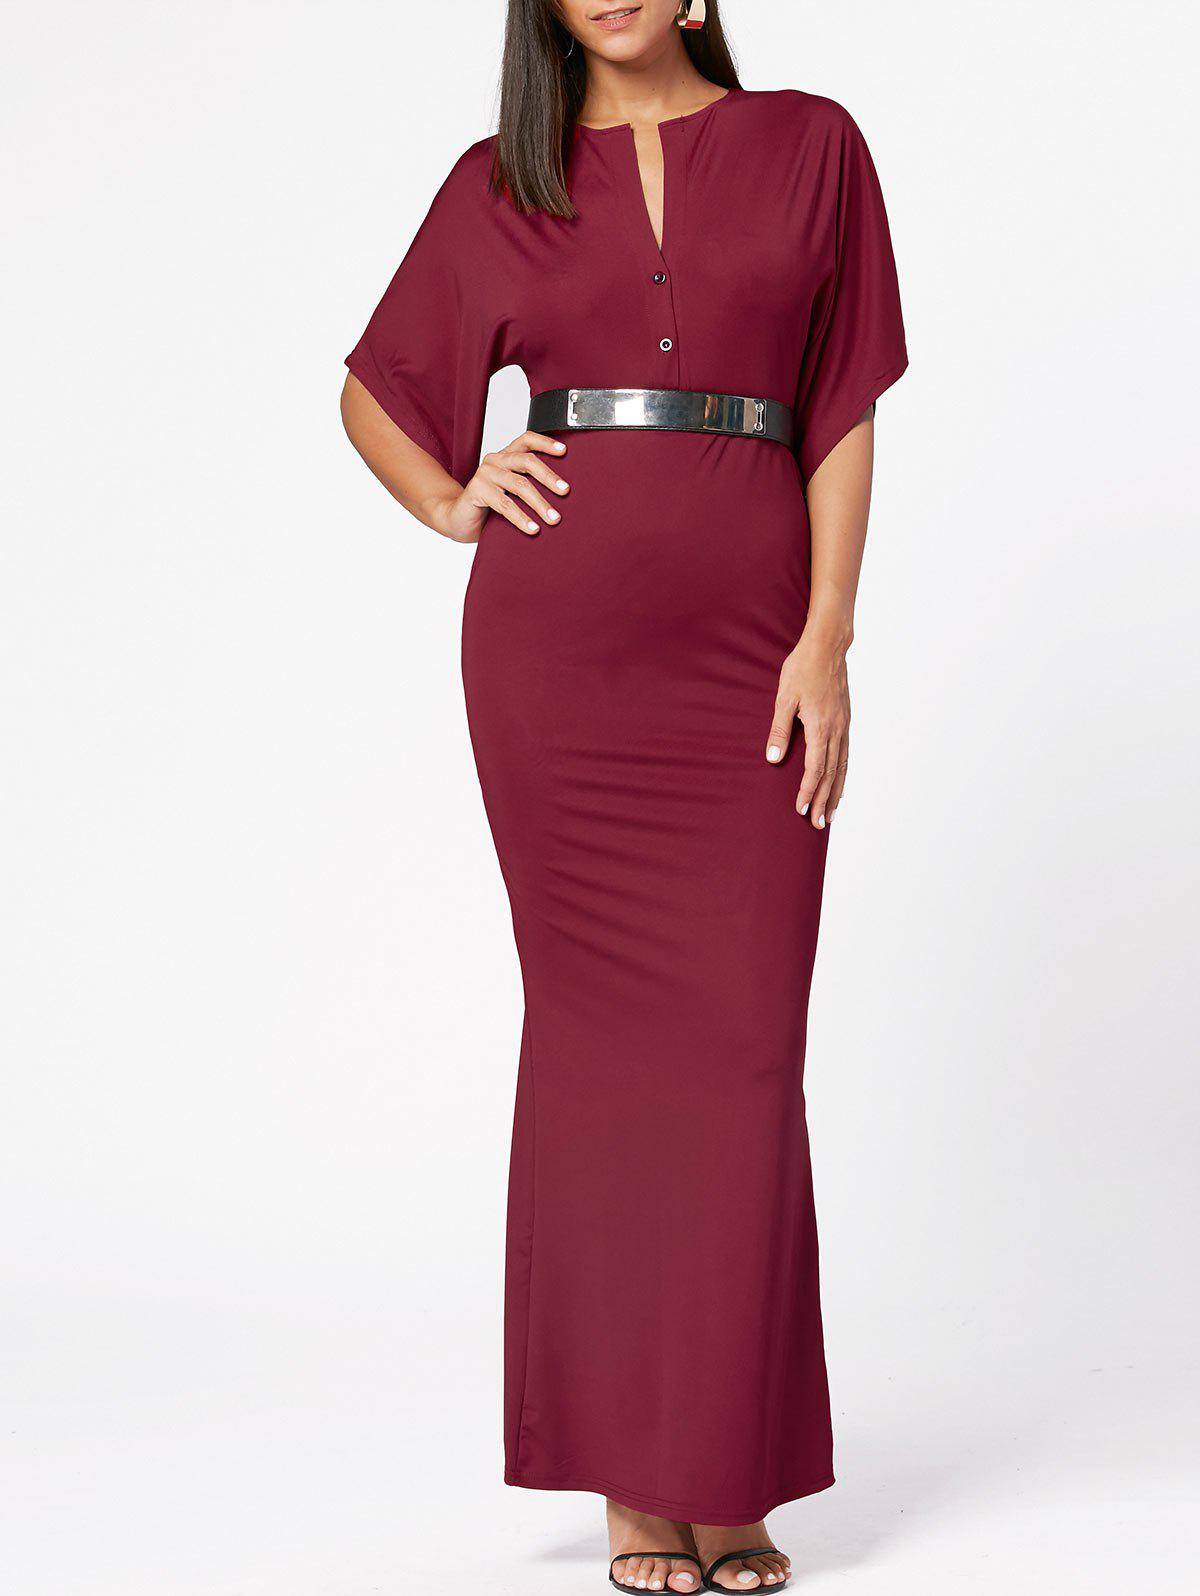 Raglan Sleeve V Neck Bodycon Maxi Dress - Rouge vineux XL